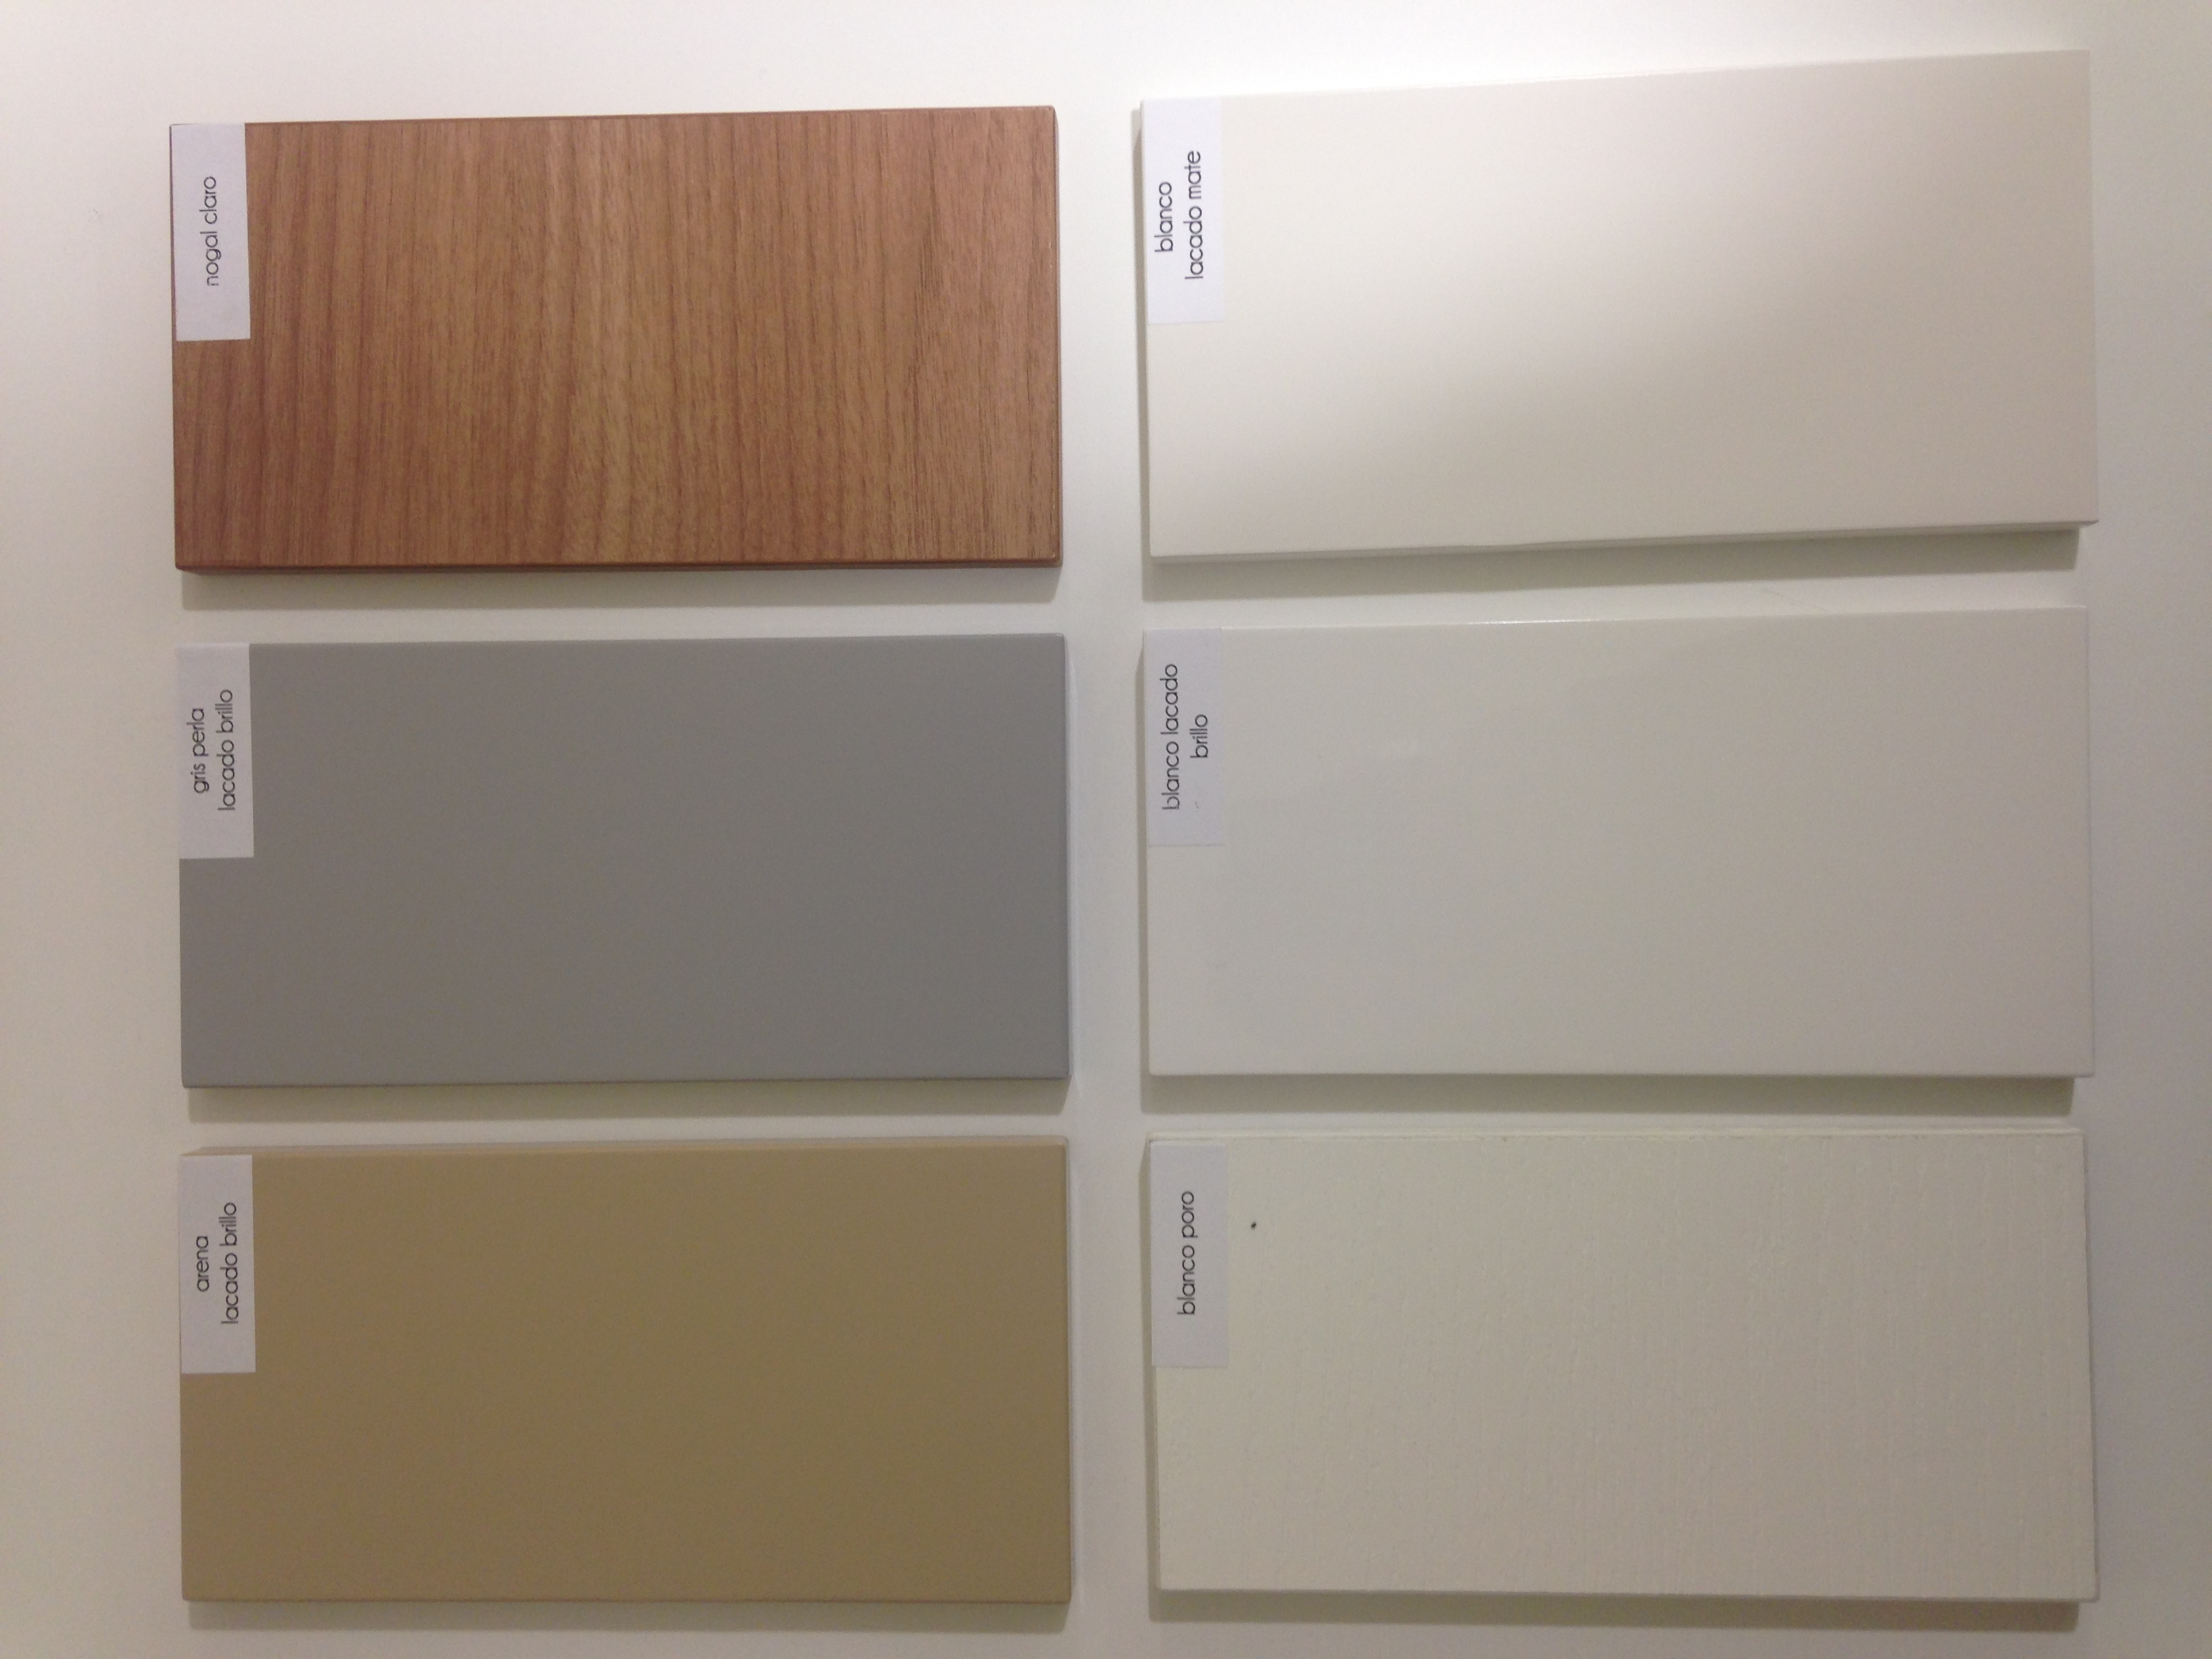 Muebles color gris perla 20170823004735 for Blanco perla pintura pared